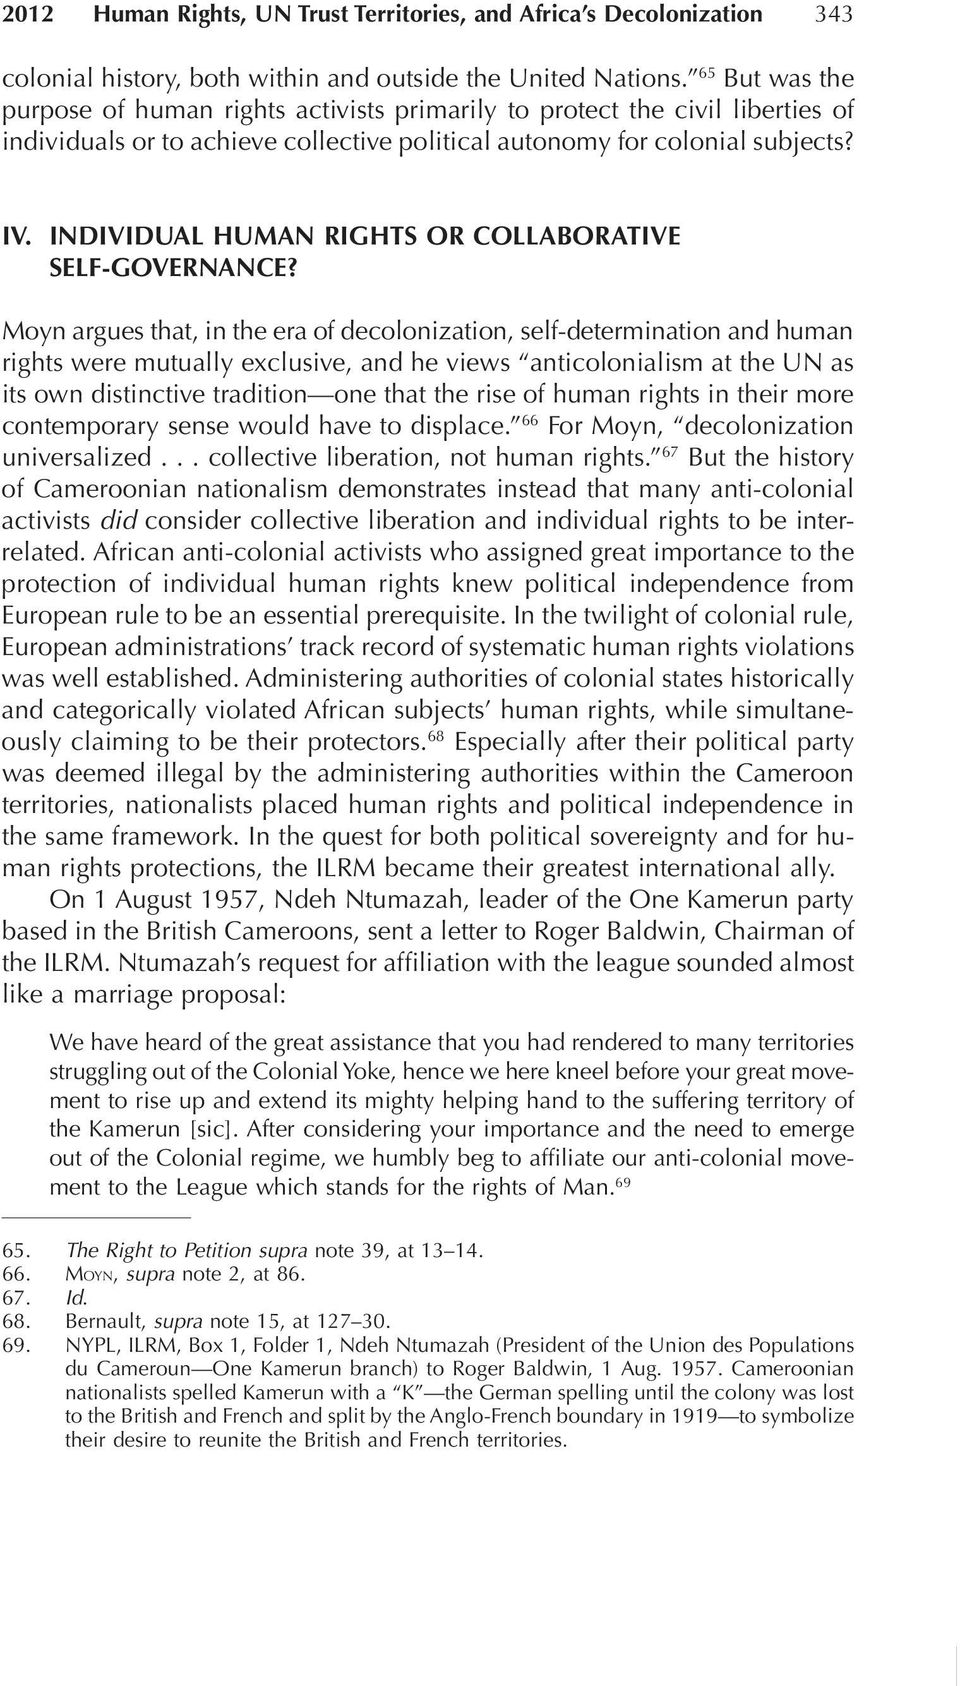 Individual Human Rights or Collaborative Self-GoVERNANce?